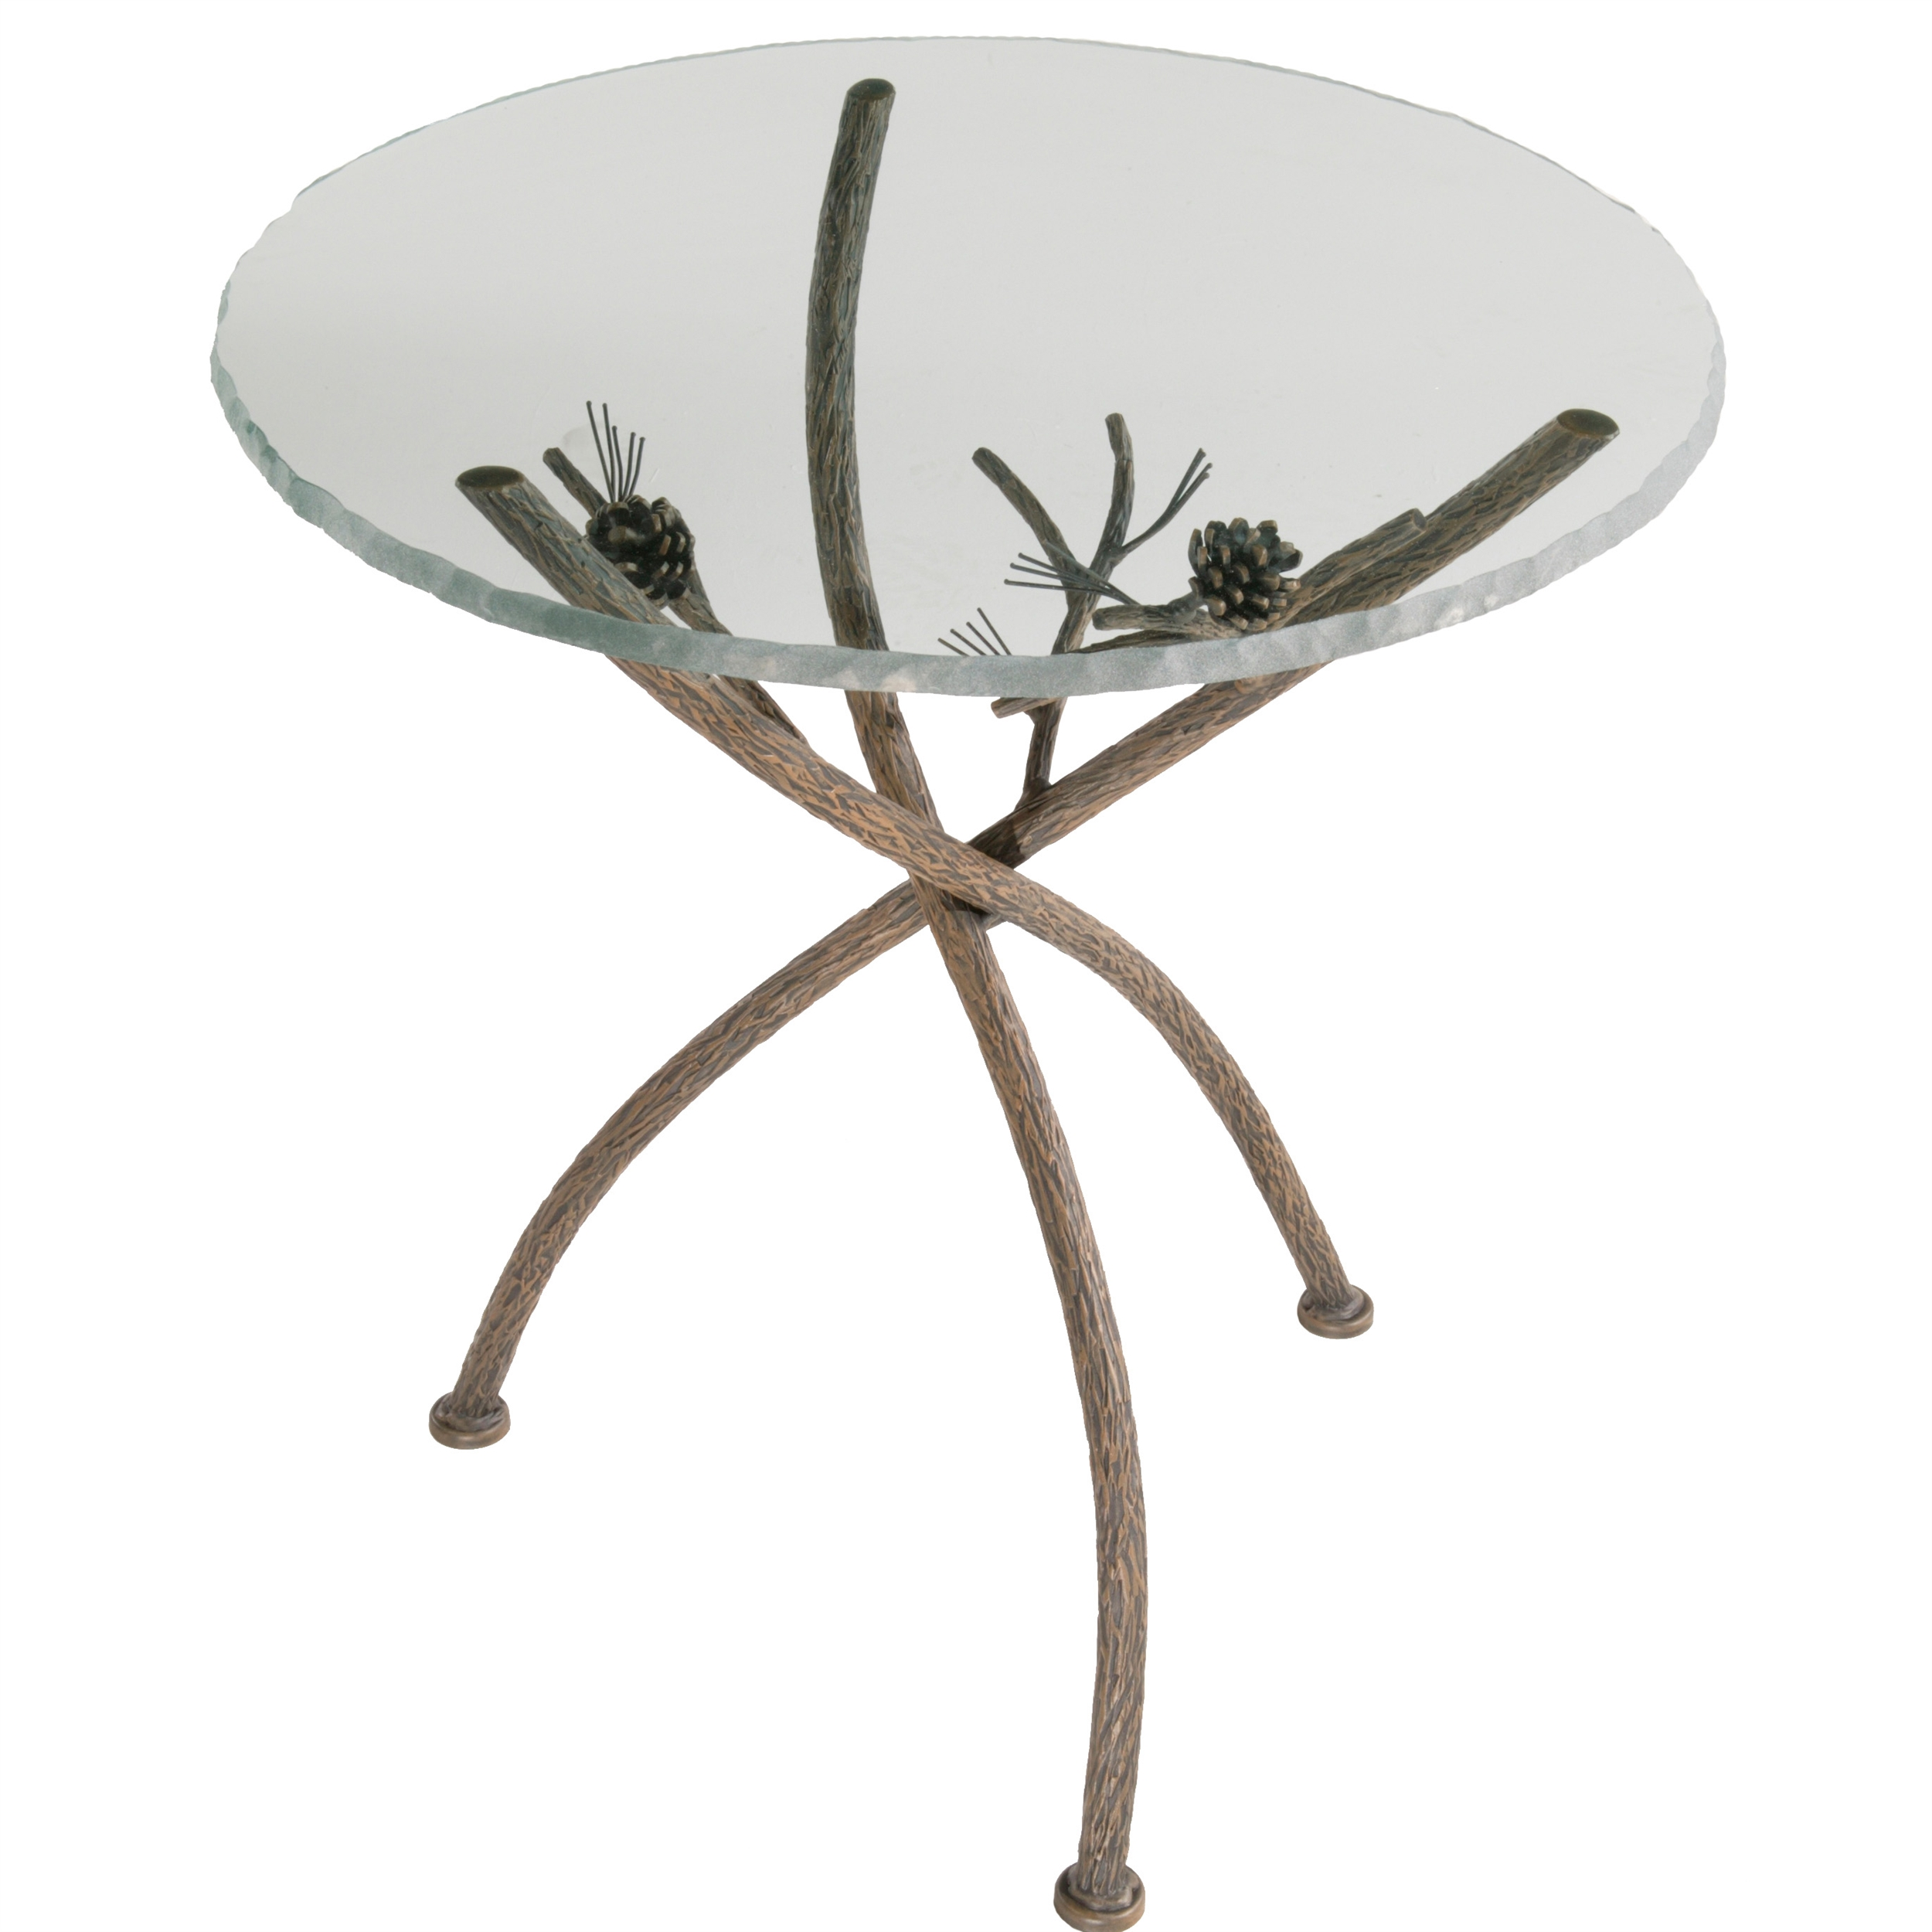 wrought iron accent table rustic pine tables glass top with and natural bark larger metal bar threshold sofa doors target marble white wine cabinet ikea hallway ideas battery